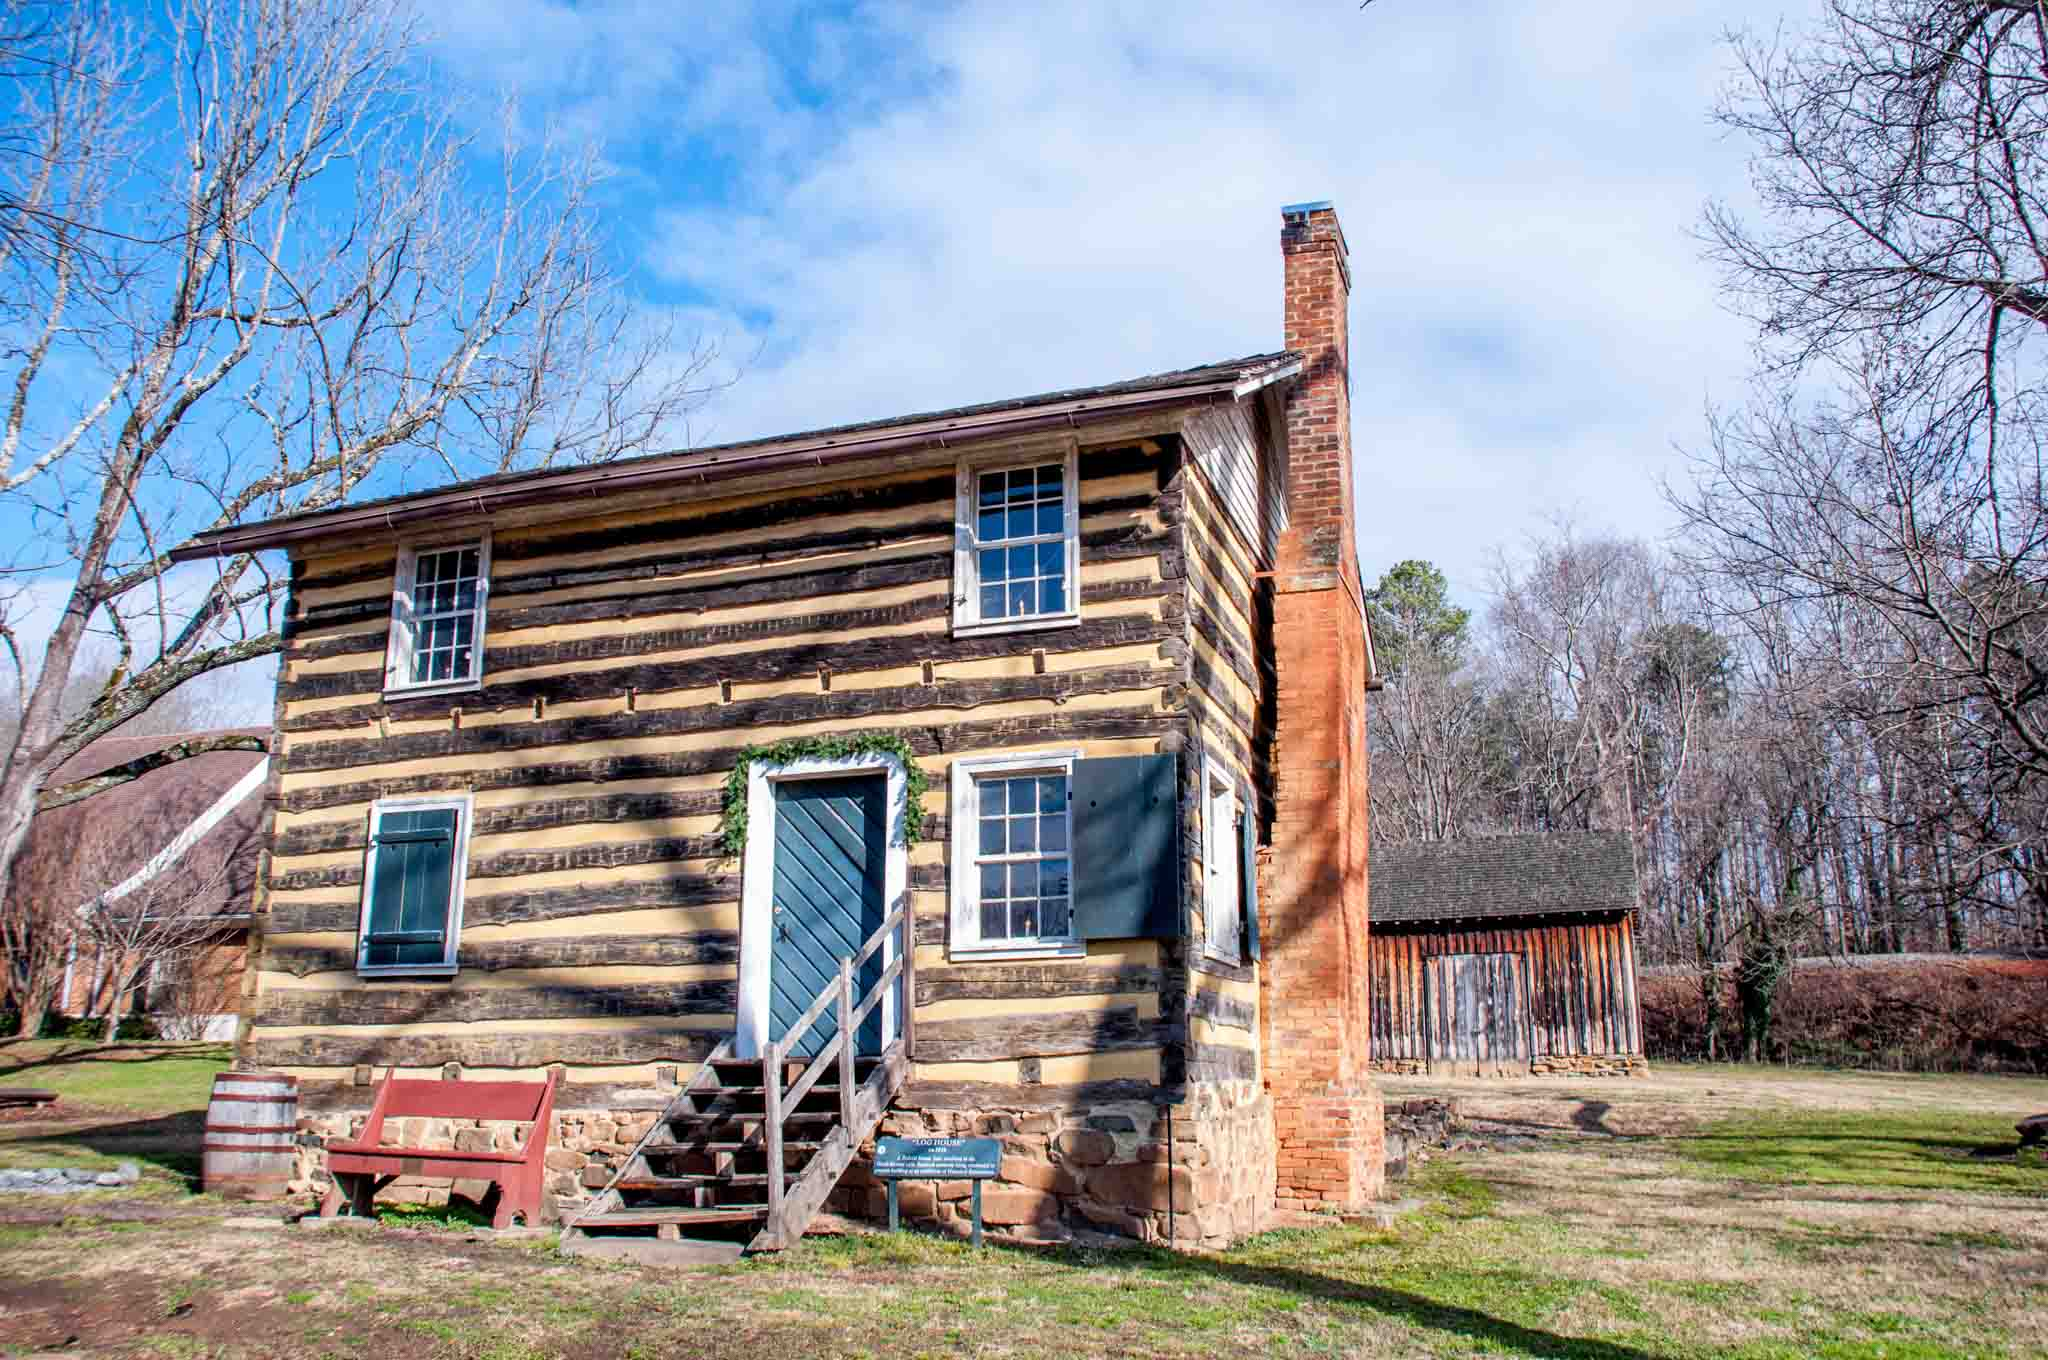 Bethabara Historic District is one of the most historic places to visit in North Carolina